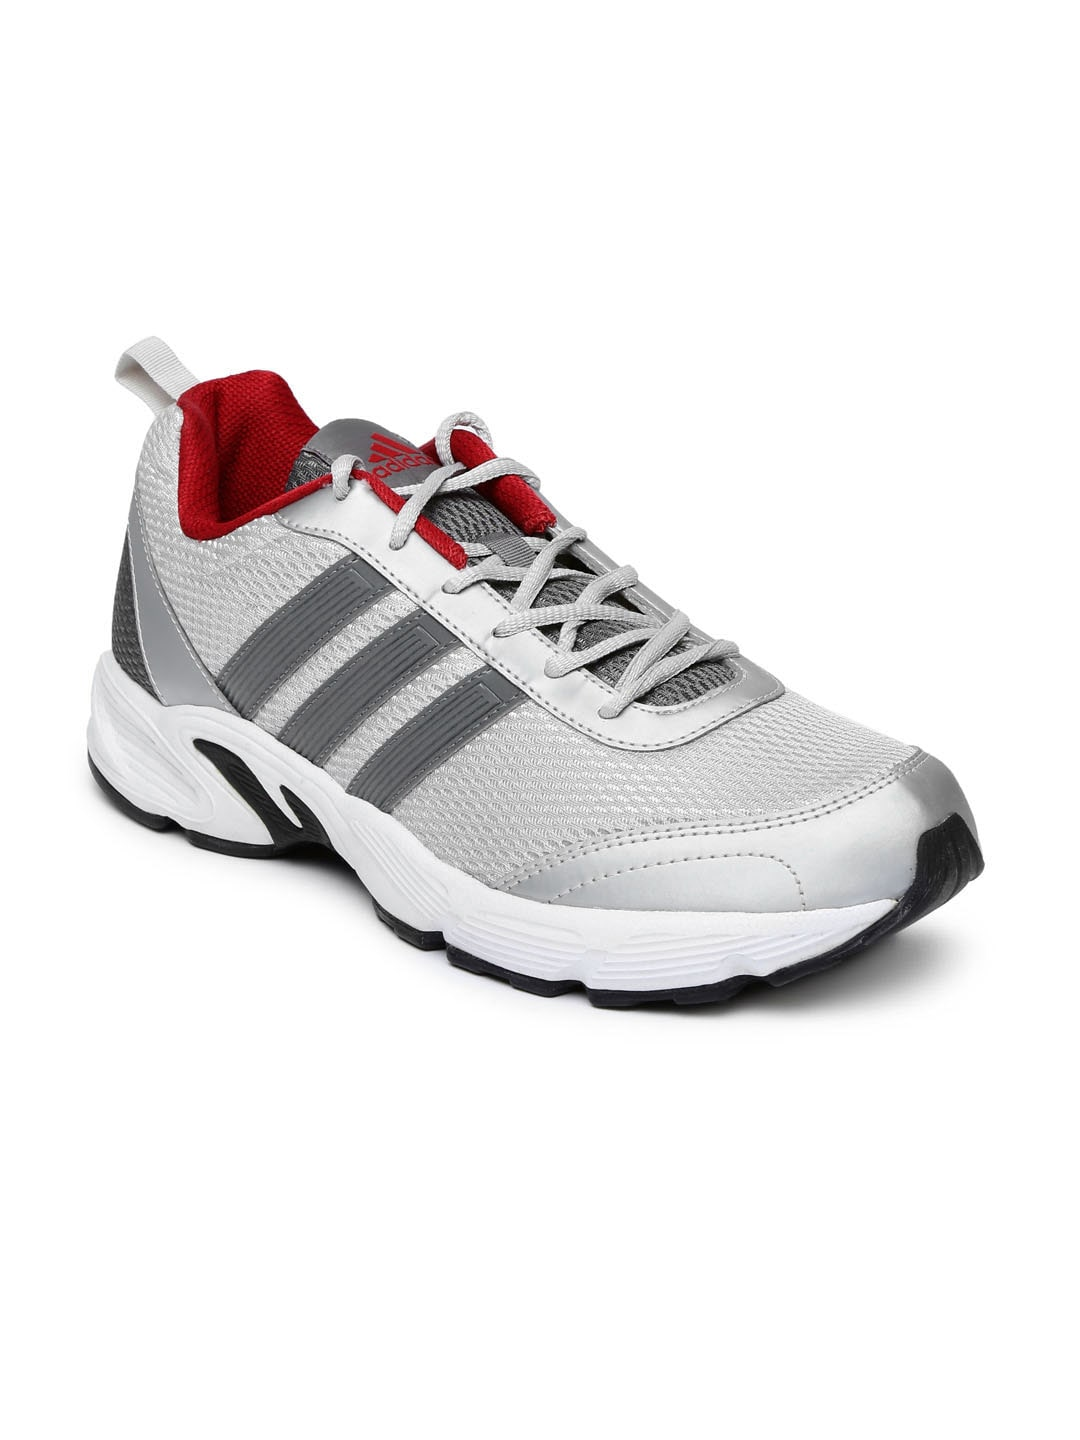 a143509d10b330 Adidas s50328 White Sports Shoes - Best Price in India